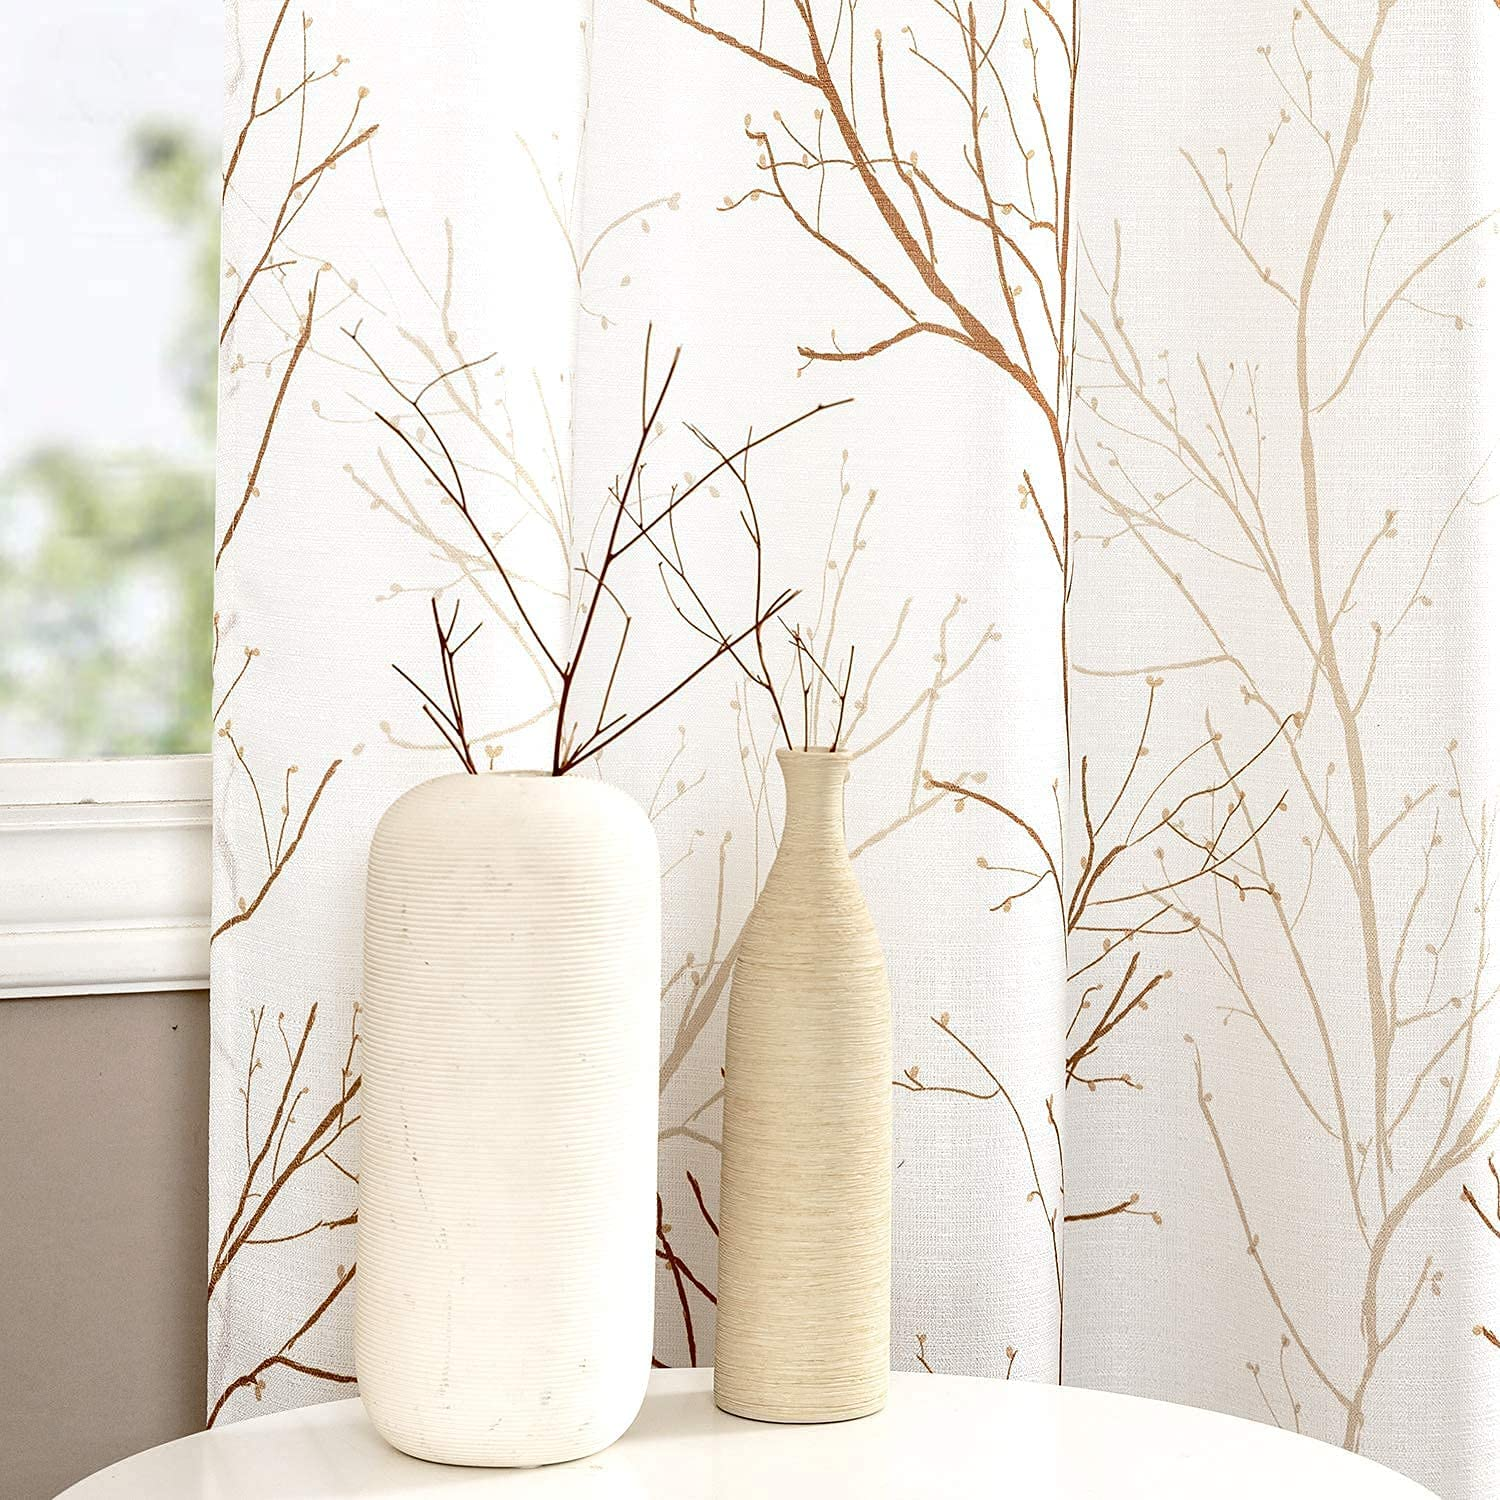 Natural Window Max 45% OFF Price reduction Curtains for Living Room Floral Embroidered Desig